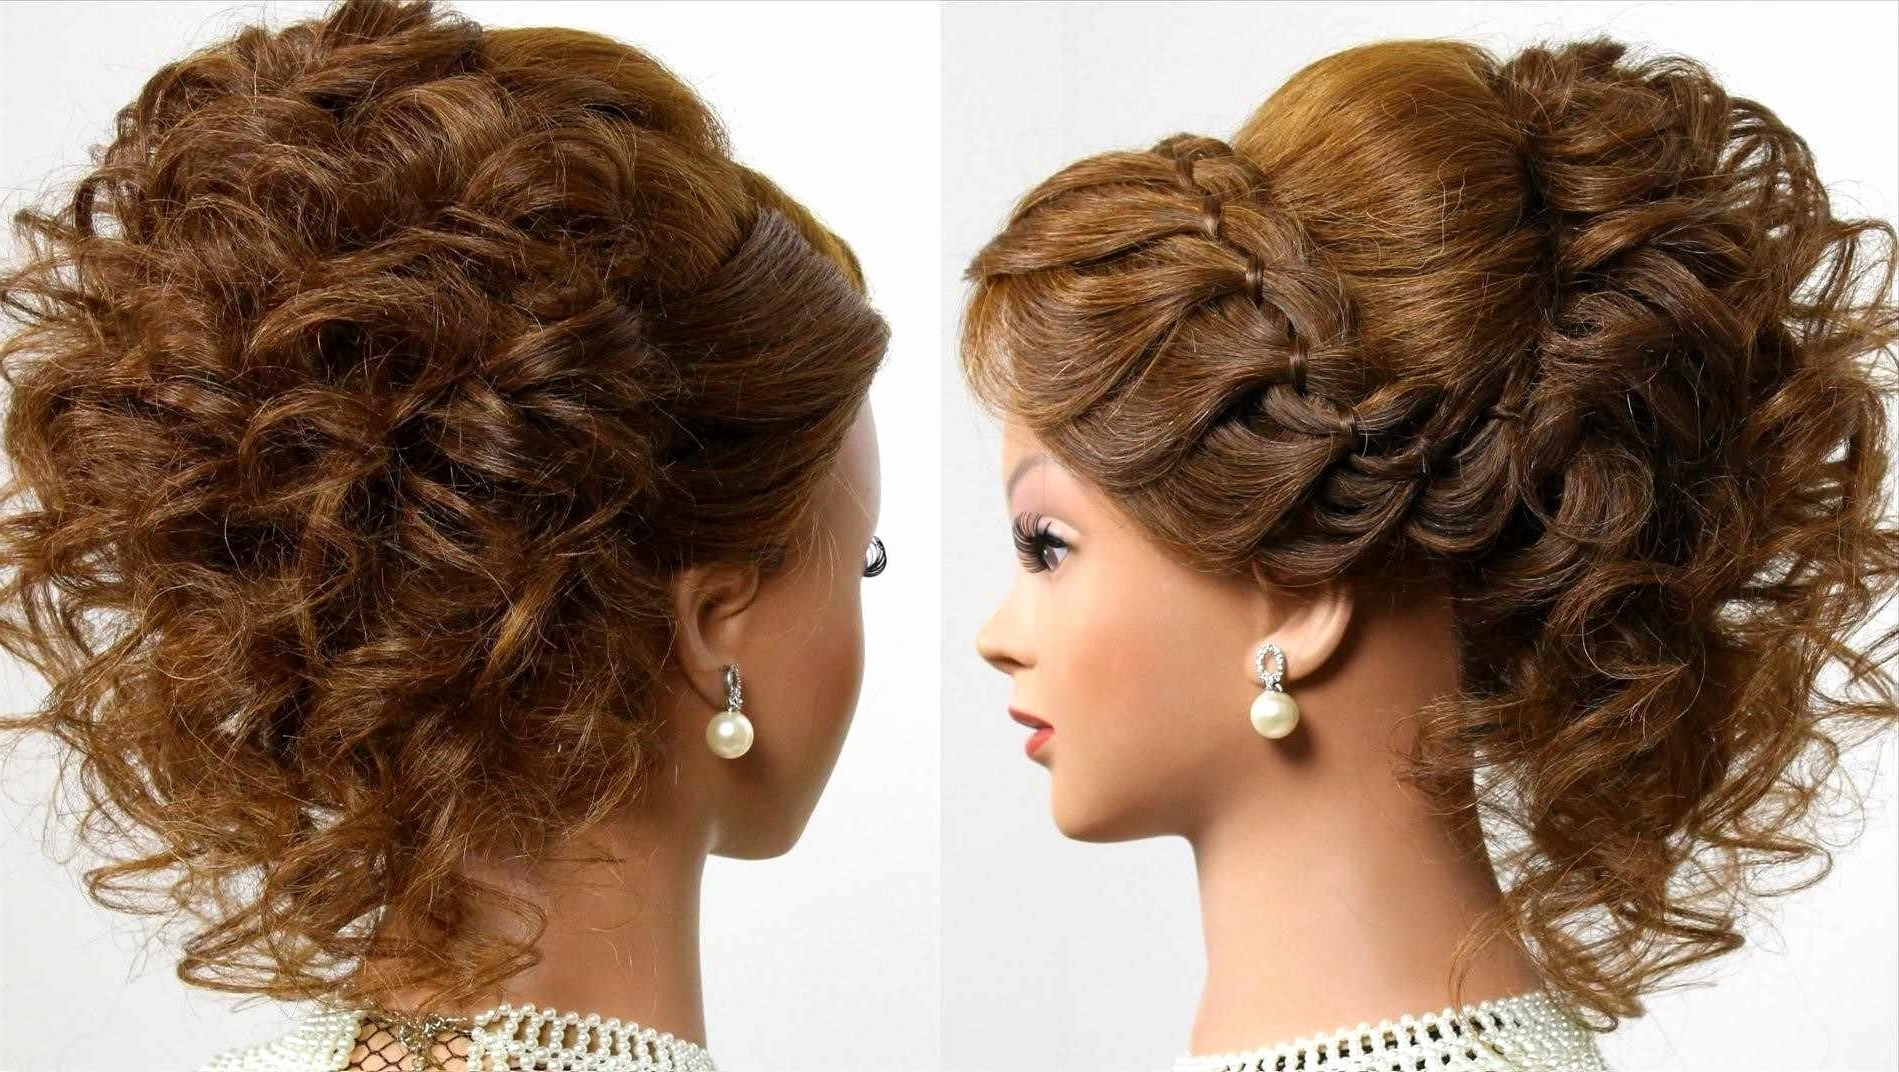 Well Known Wedding Hairstyles For Medium Long Length Hair Intended For Half Up Half Down Wedding Hairstyles For Medium Length Hair Fresh (View 14 of 15)